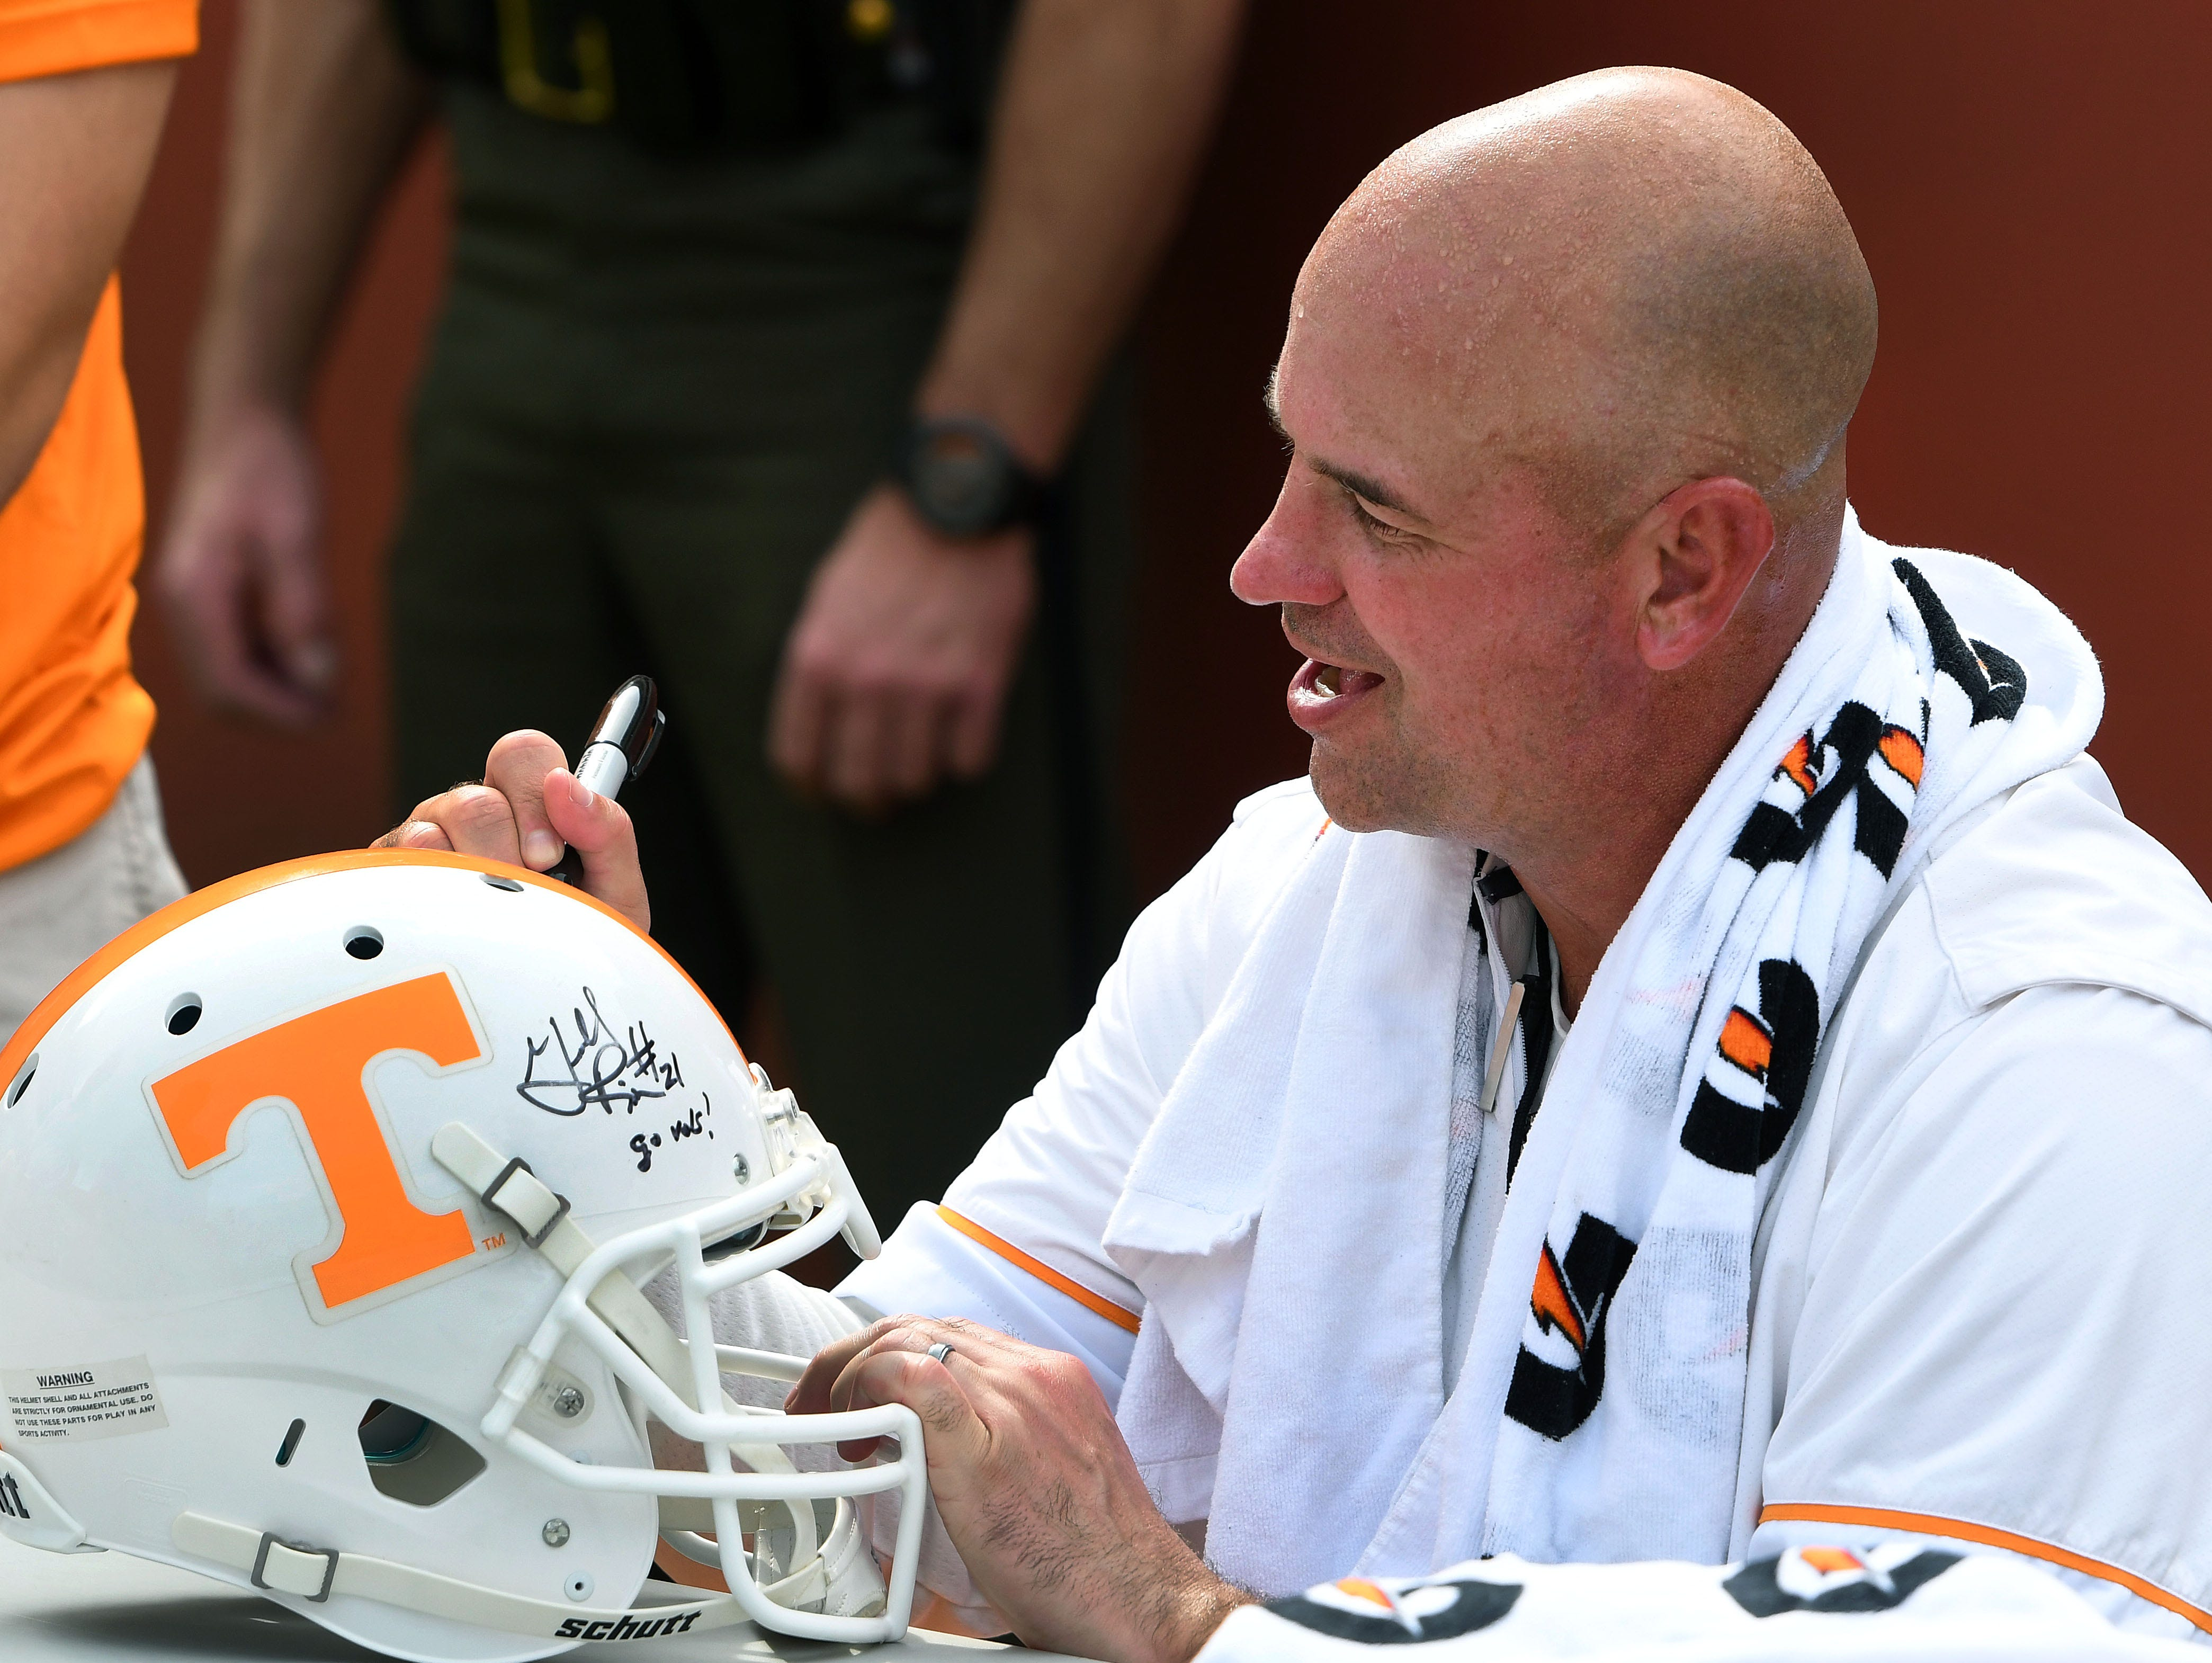 Tennessee Head Coach Jeremy Pruitt signs autographs for fans at the conclusion of practice as part of Fan Day in Neyland Stadium Sunday, August 5, 2018.